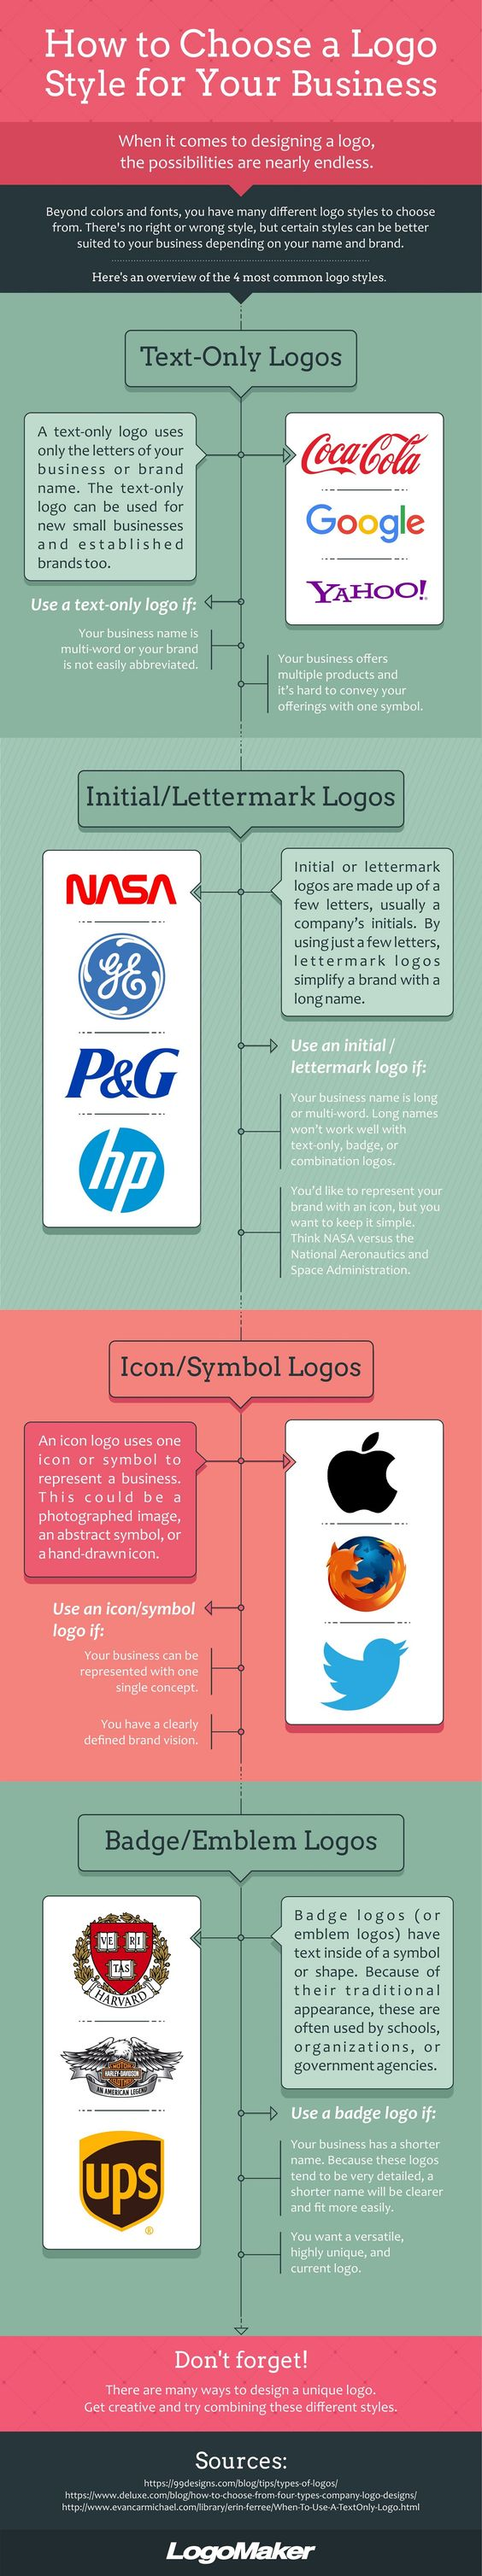 How to Choose a Logo Style for Your Business #Infographic #Business